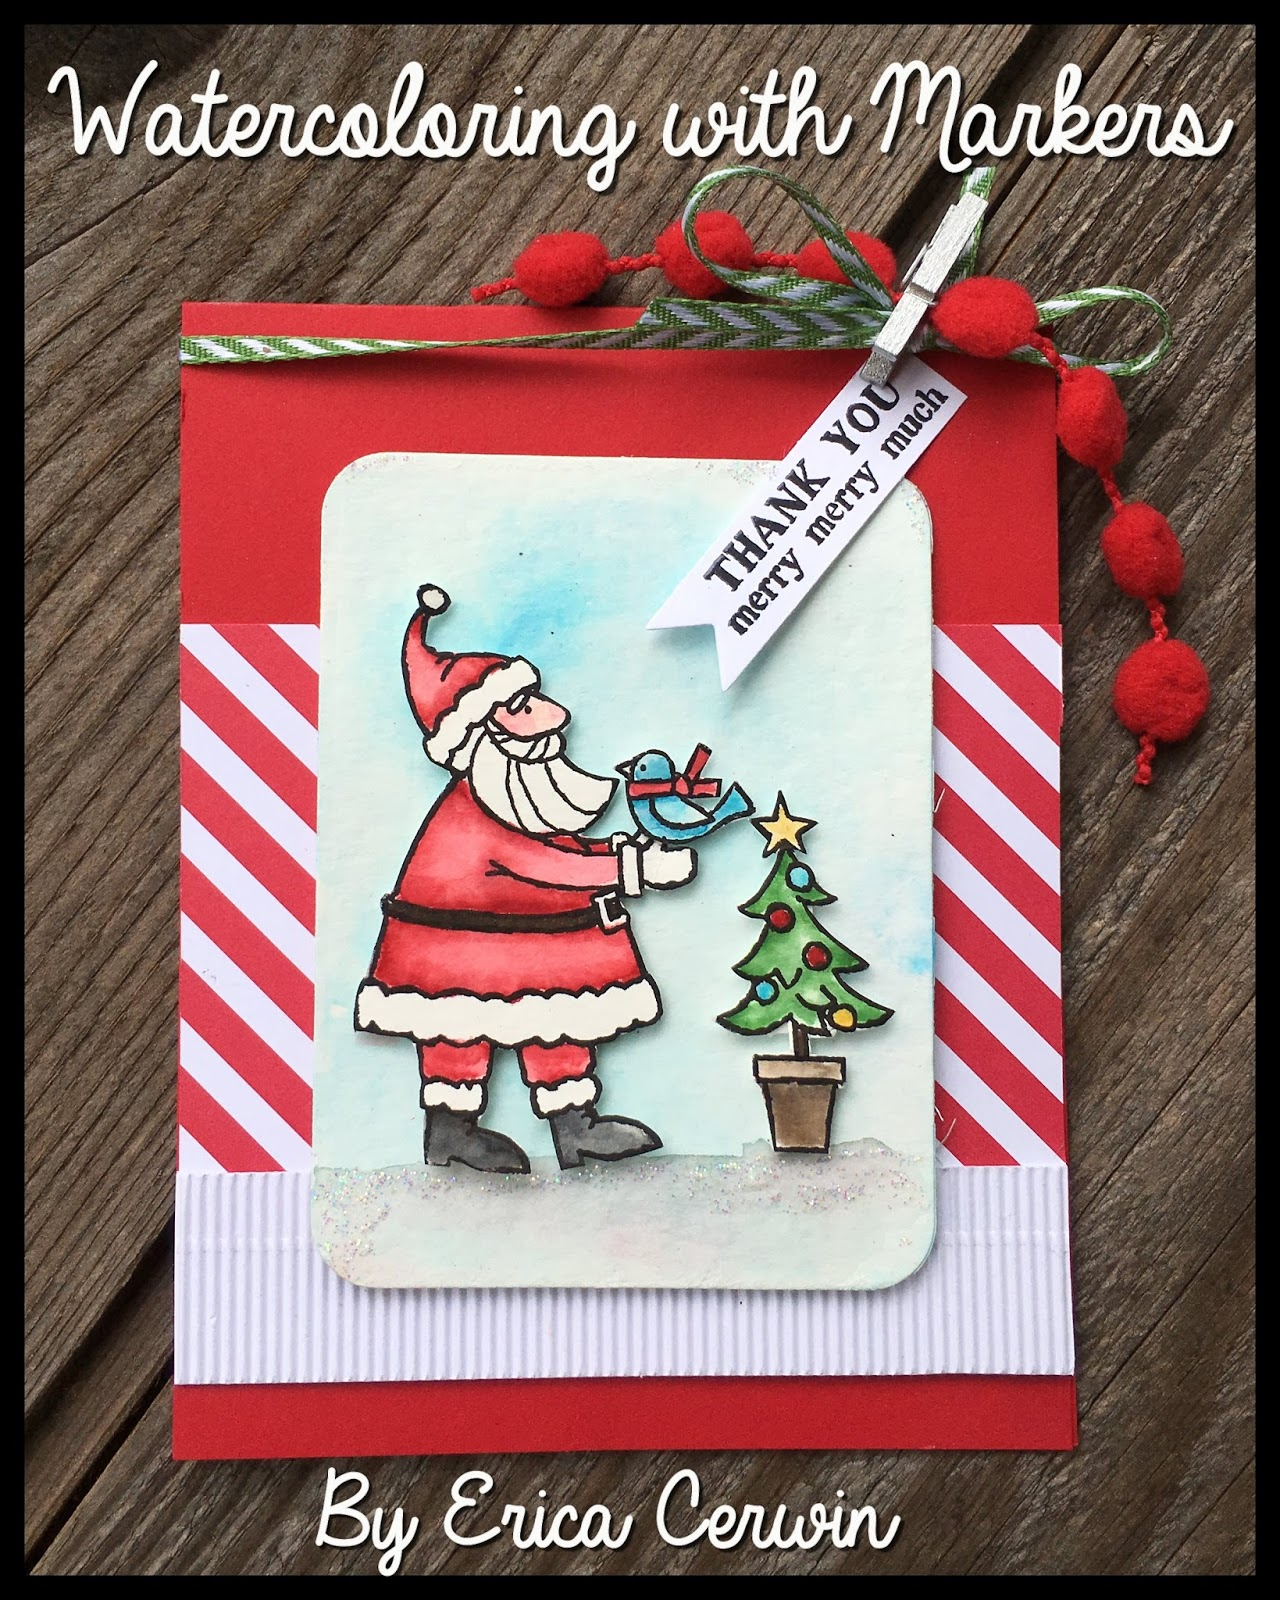 Pink buckaroo designs santas gifts watercoloring with markers video do you like the watercolor look do you have trouble achieving that look maybe you dont have very many stamp pads in todays video ill show you how you m4hsunfo